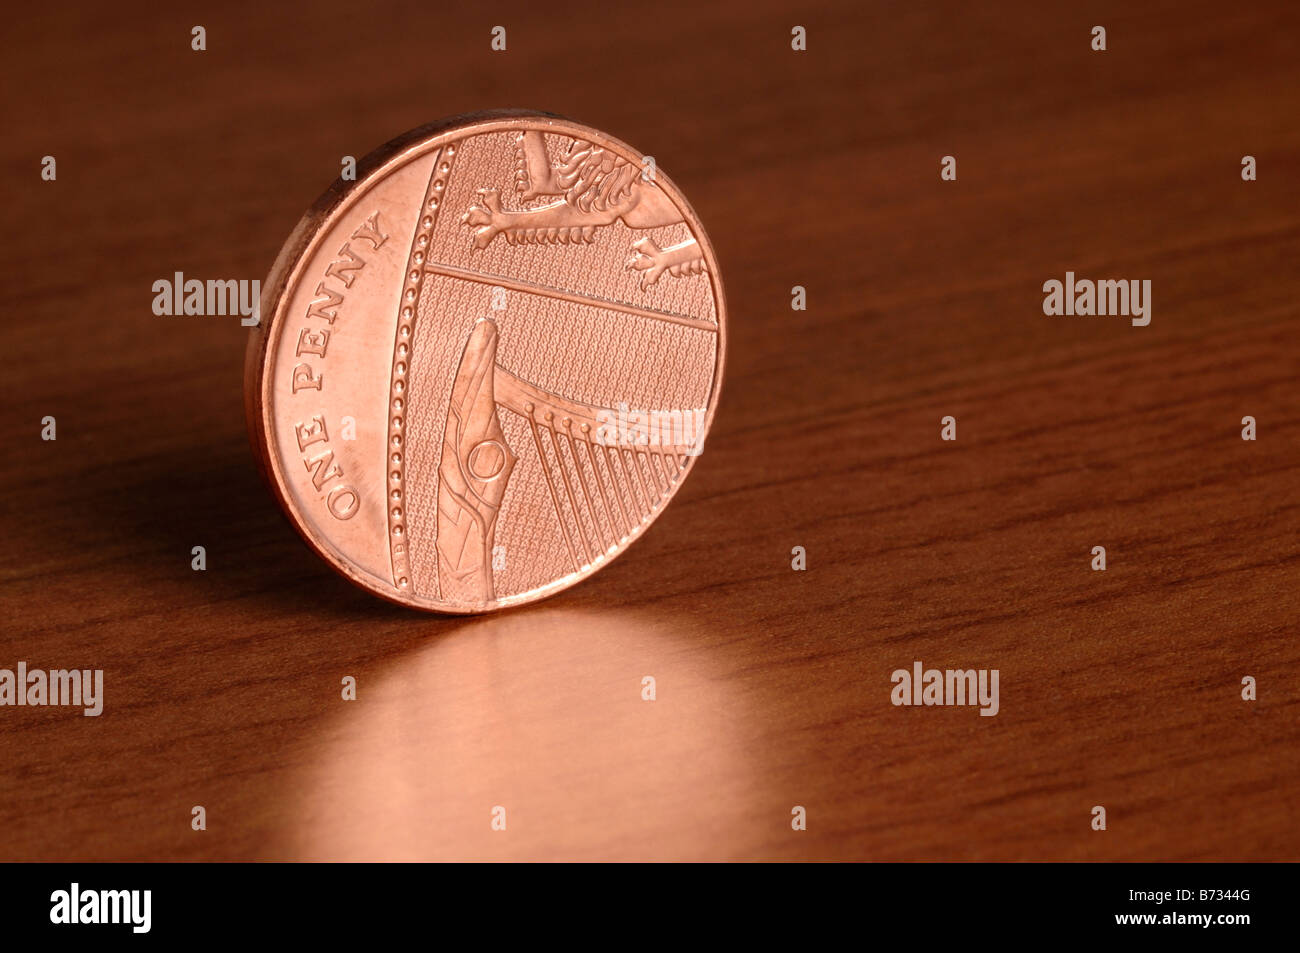 1 pence coin - Stock Image